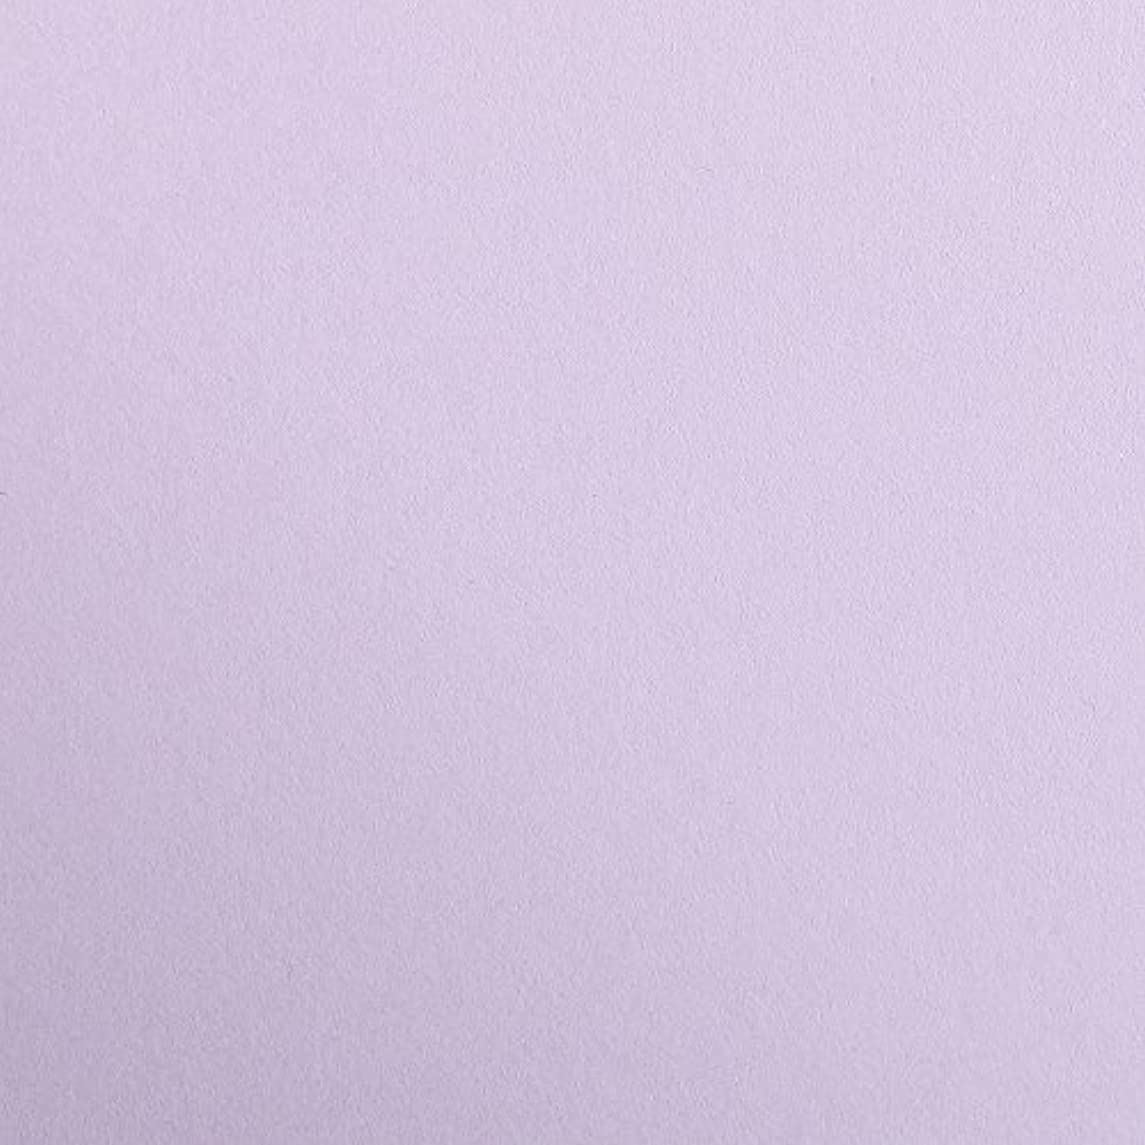 Clairefontaine Maya Coloured Smooth Drawing Paper, 120 g, A4 - Lilac, Pack of 25 Sheets